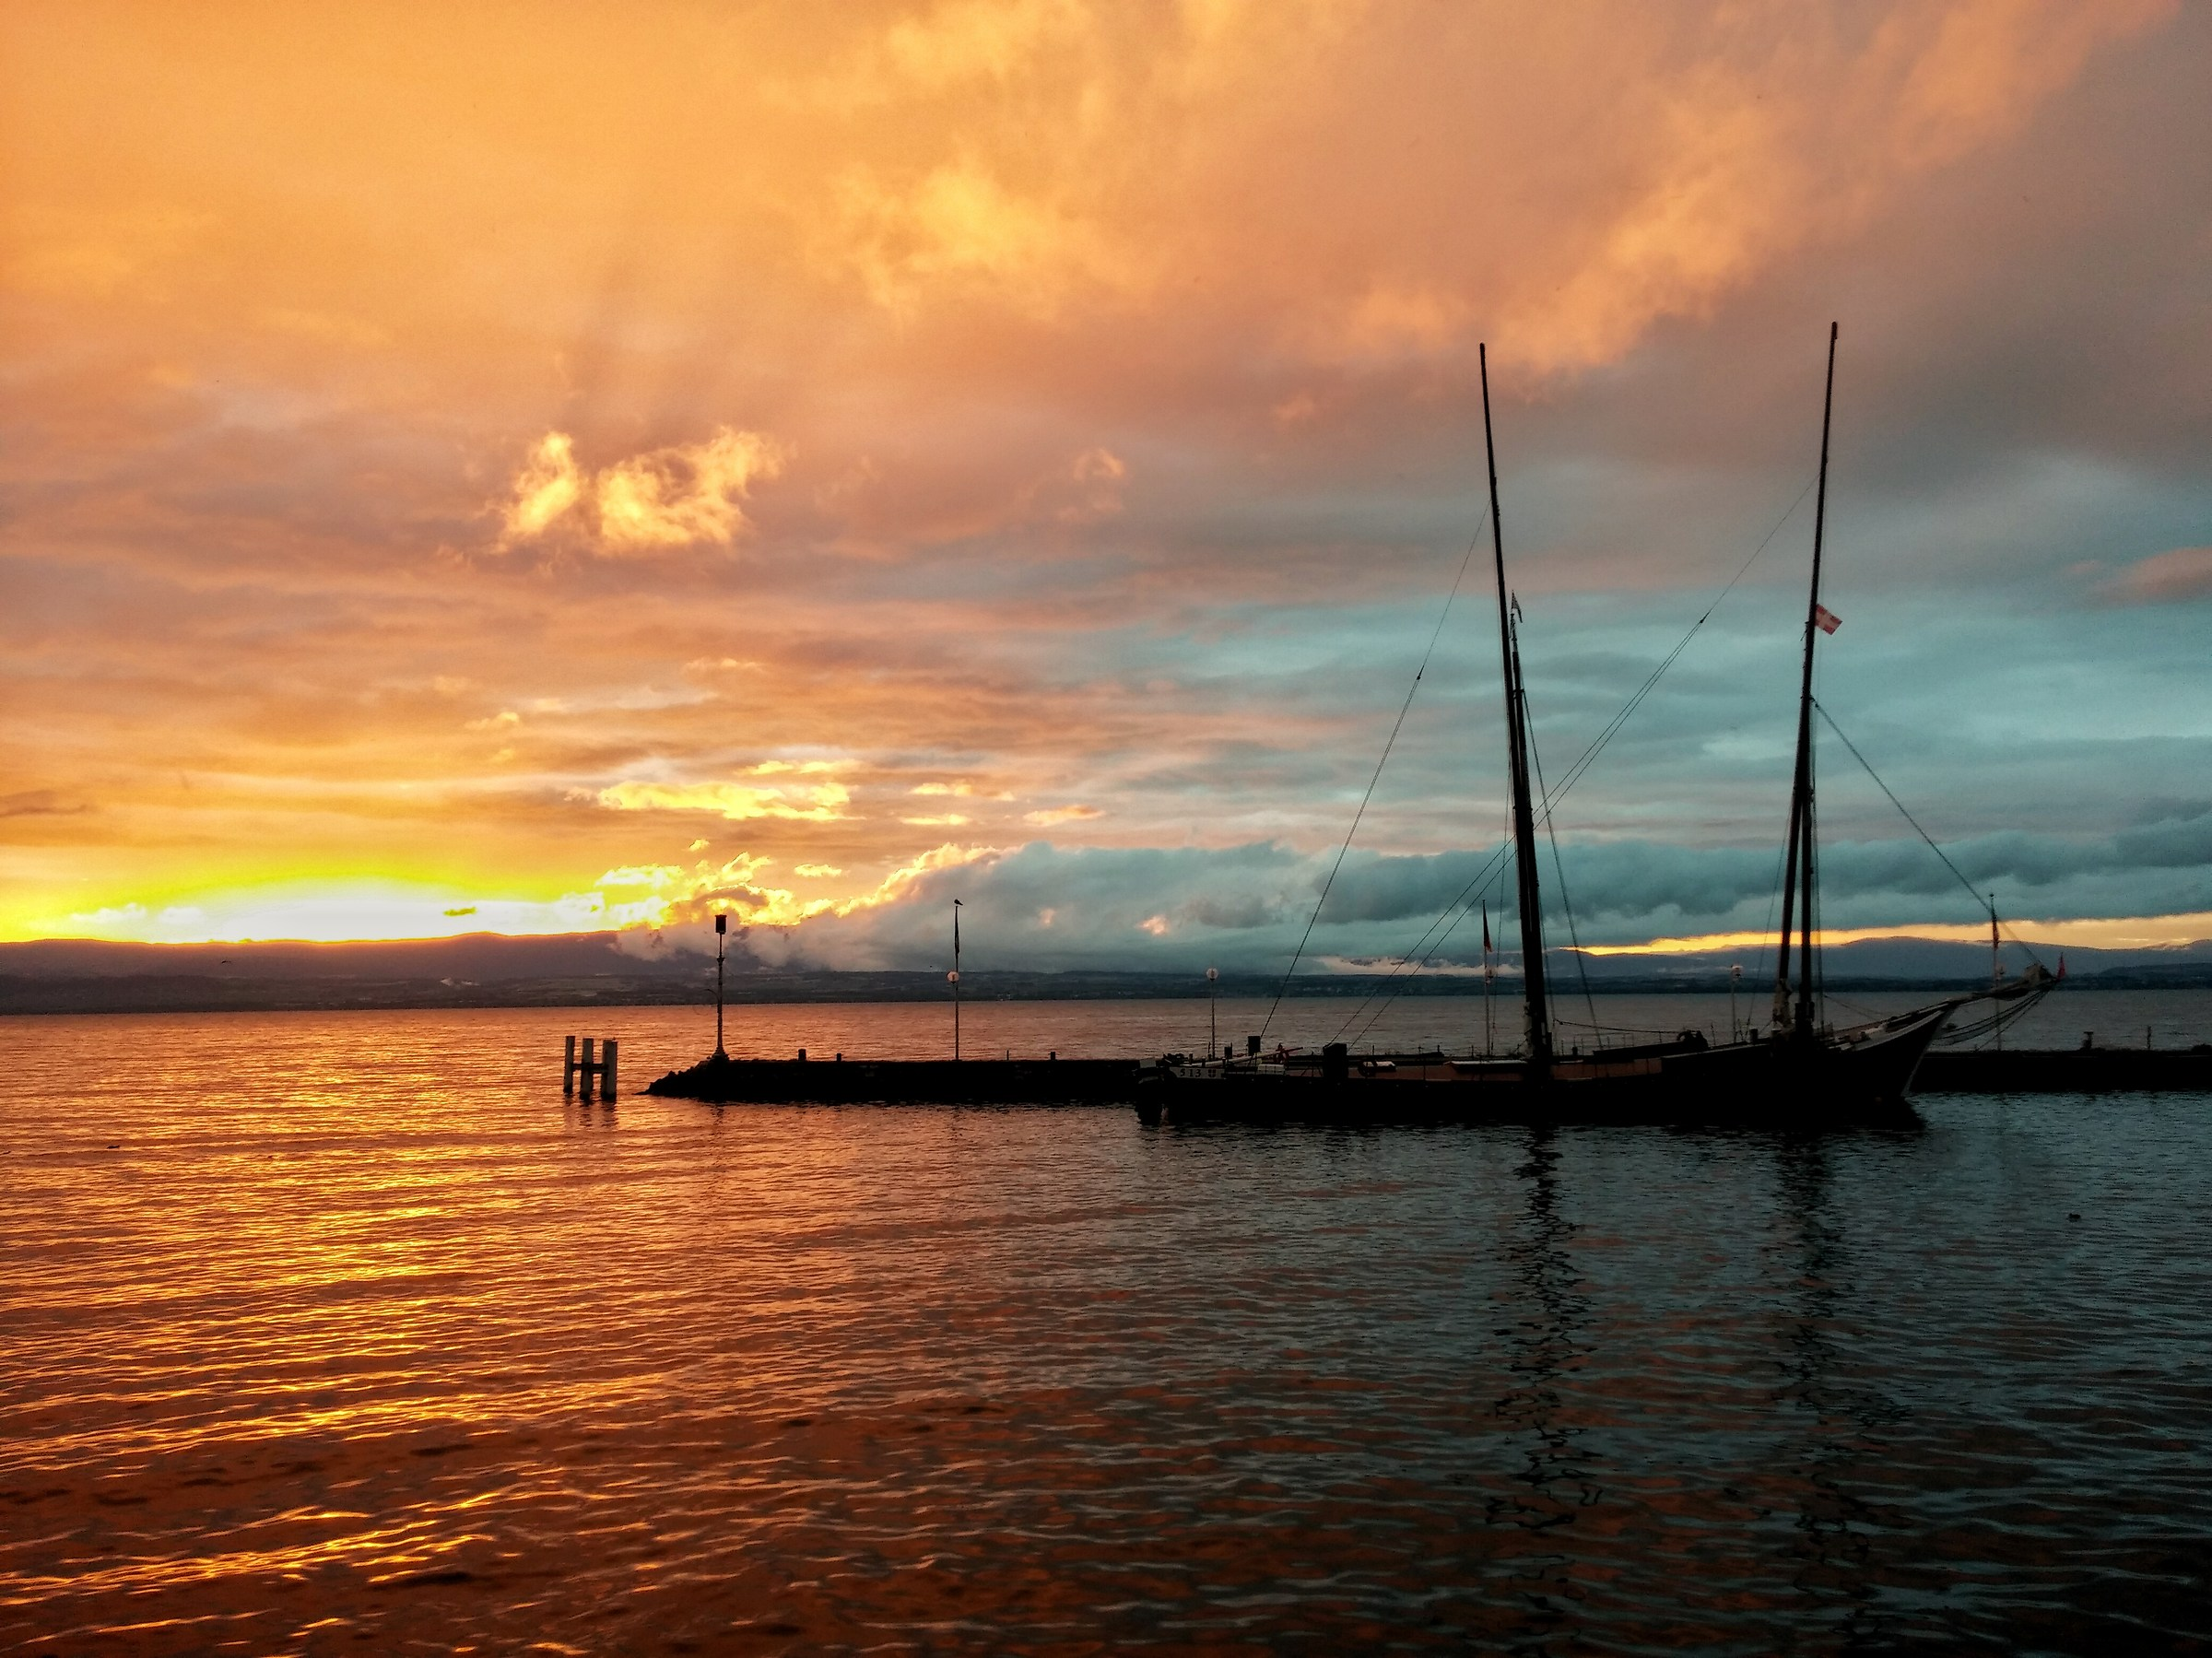 Sunset in Evian les Bains...